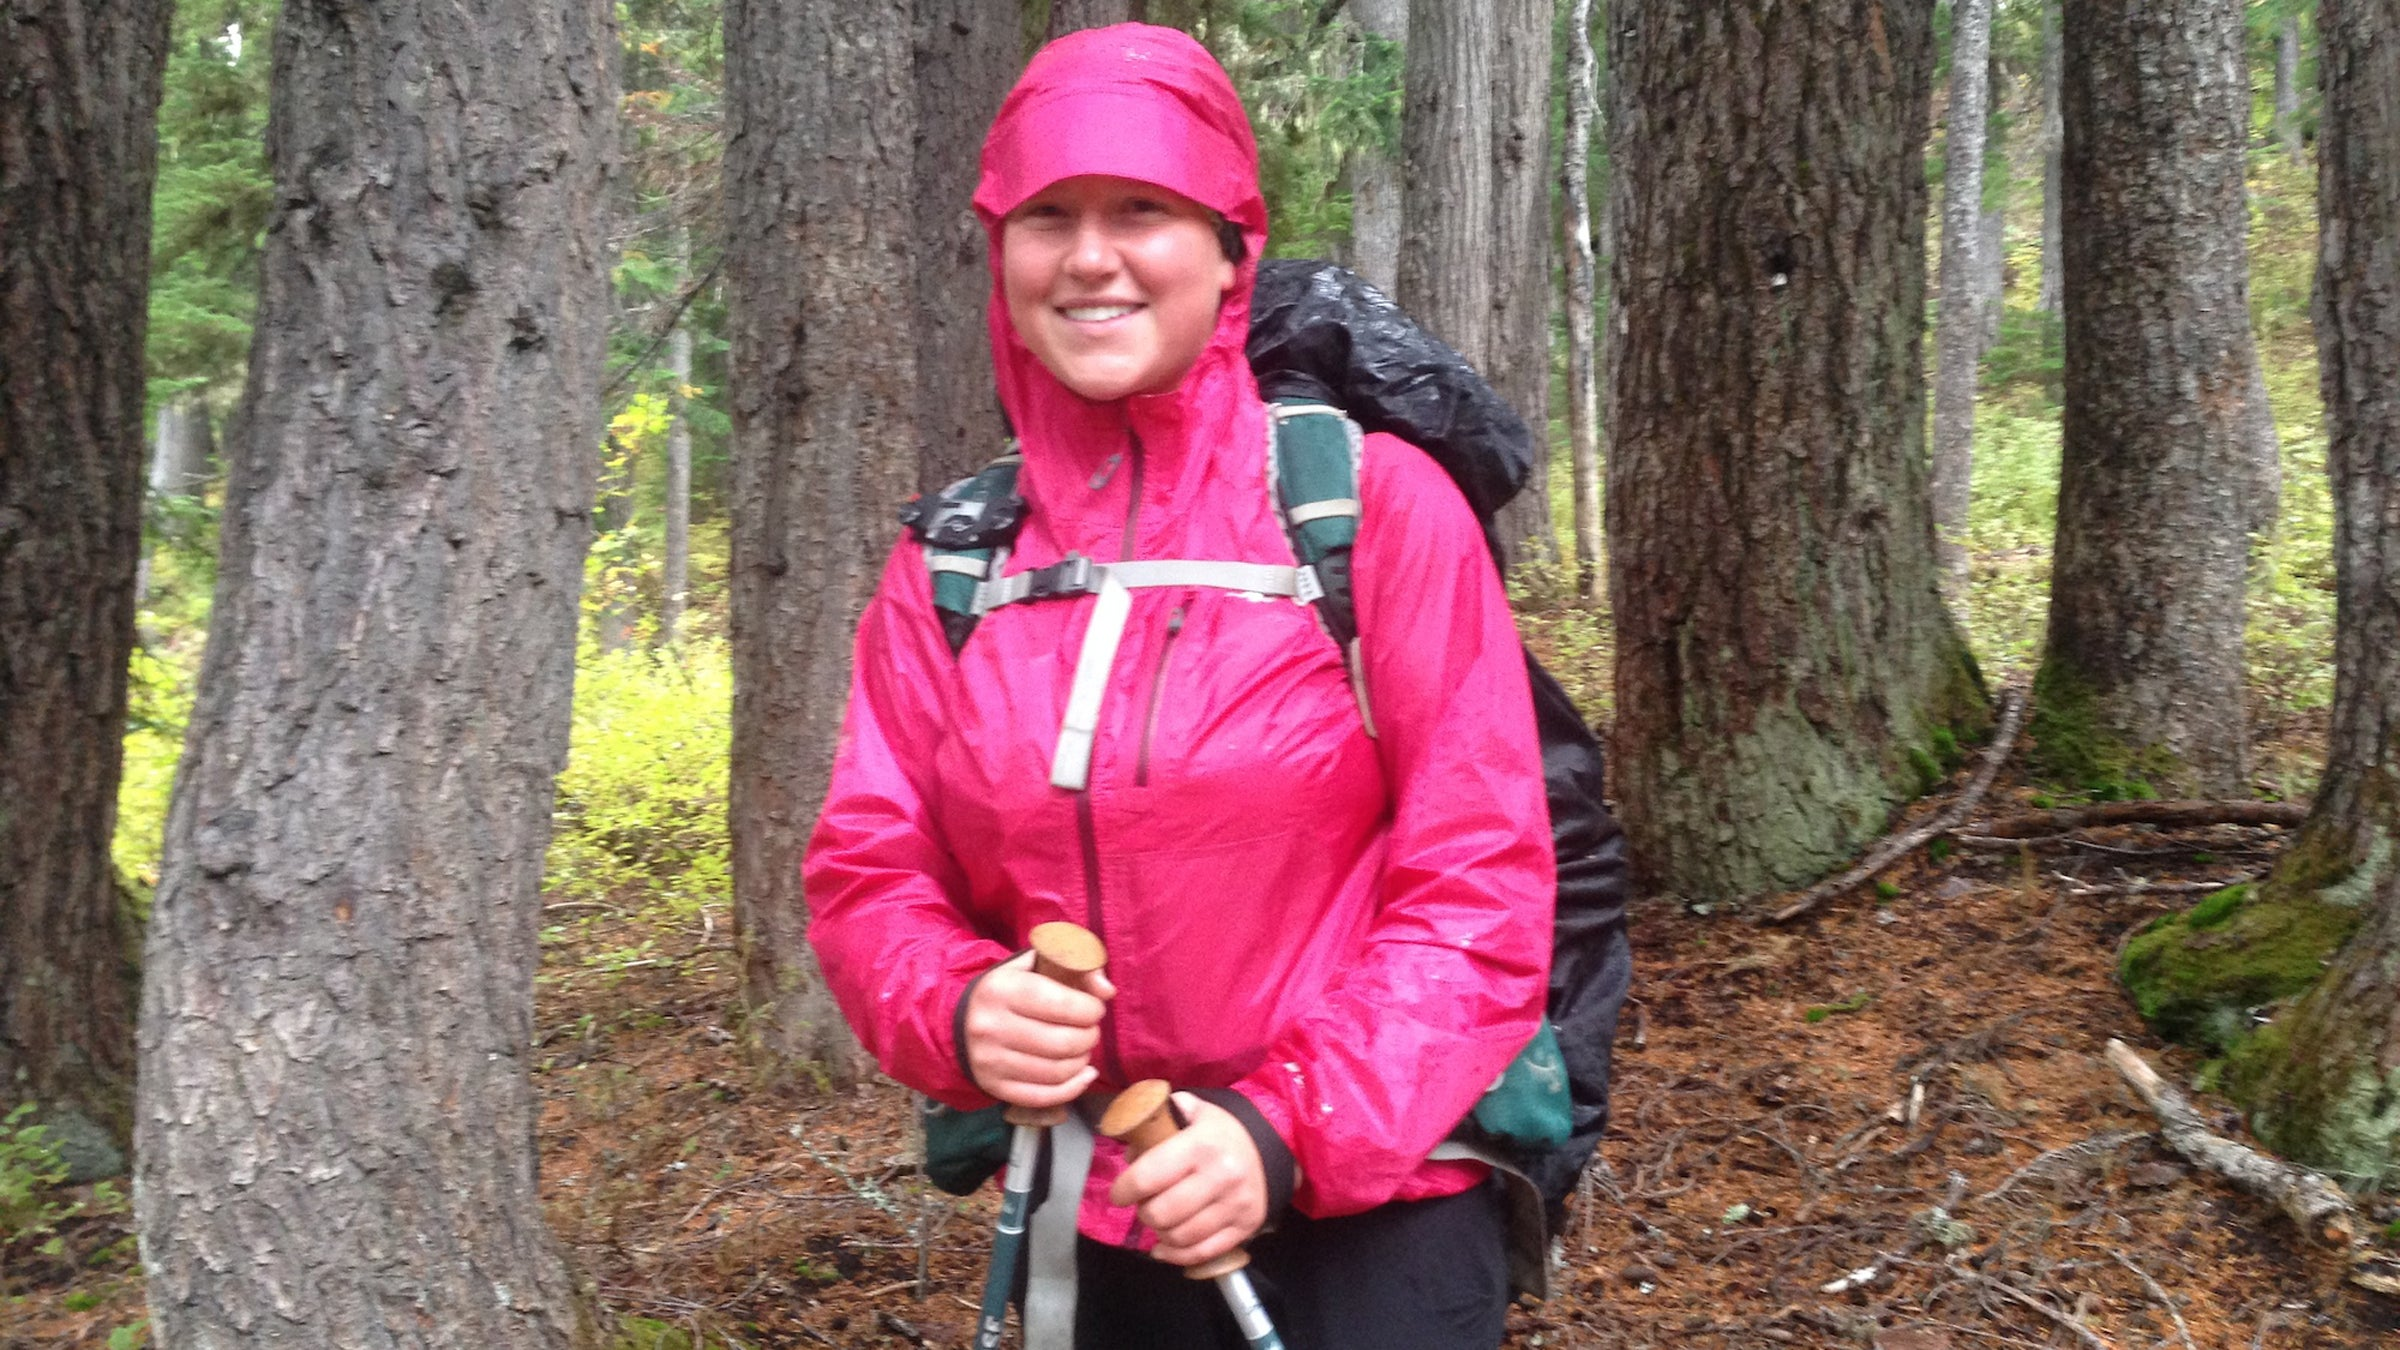 """Katie Copeland, 20 Trail Name: Tape Boss Calgary, Alberta """"Getting outside of your comfort zone is where you grow. I'd not have grown had I not hiked. I'm way more confident now. I learned it's important to have people around you. I'll be returning to school. I've become smarter in many ways, but academically less so! I have a feeling I'll return home and not be able to explain the wholeness of the PCT. It's amazing and horrible and so many things. All the bad moments—rain, loneliness, homesickness—they're part of it but make the accomplishment all the more worthwhile."""""""